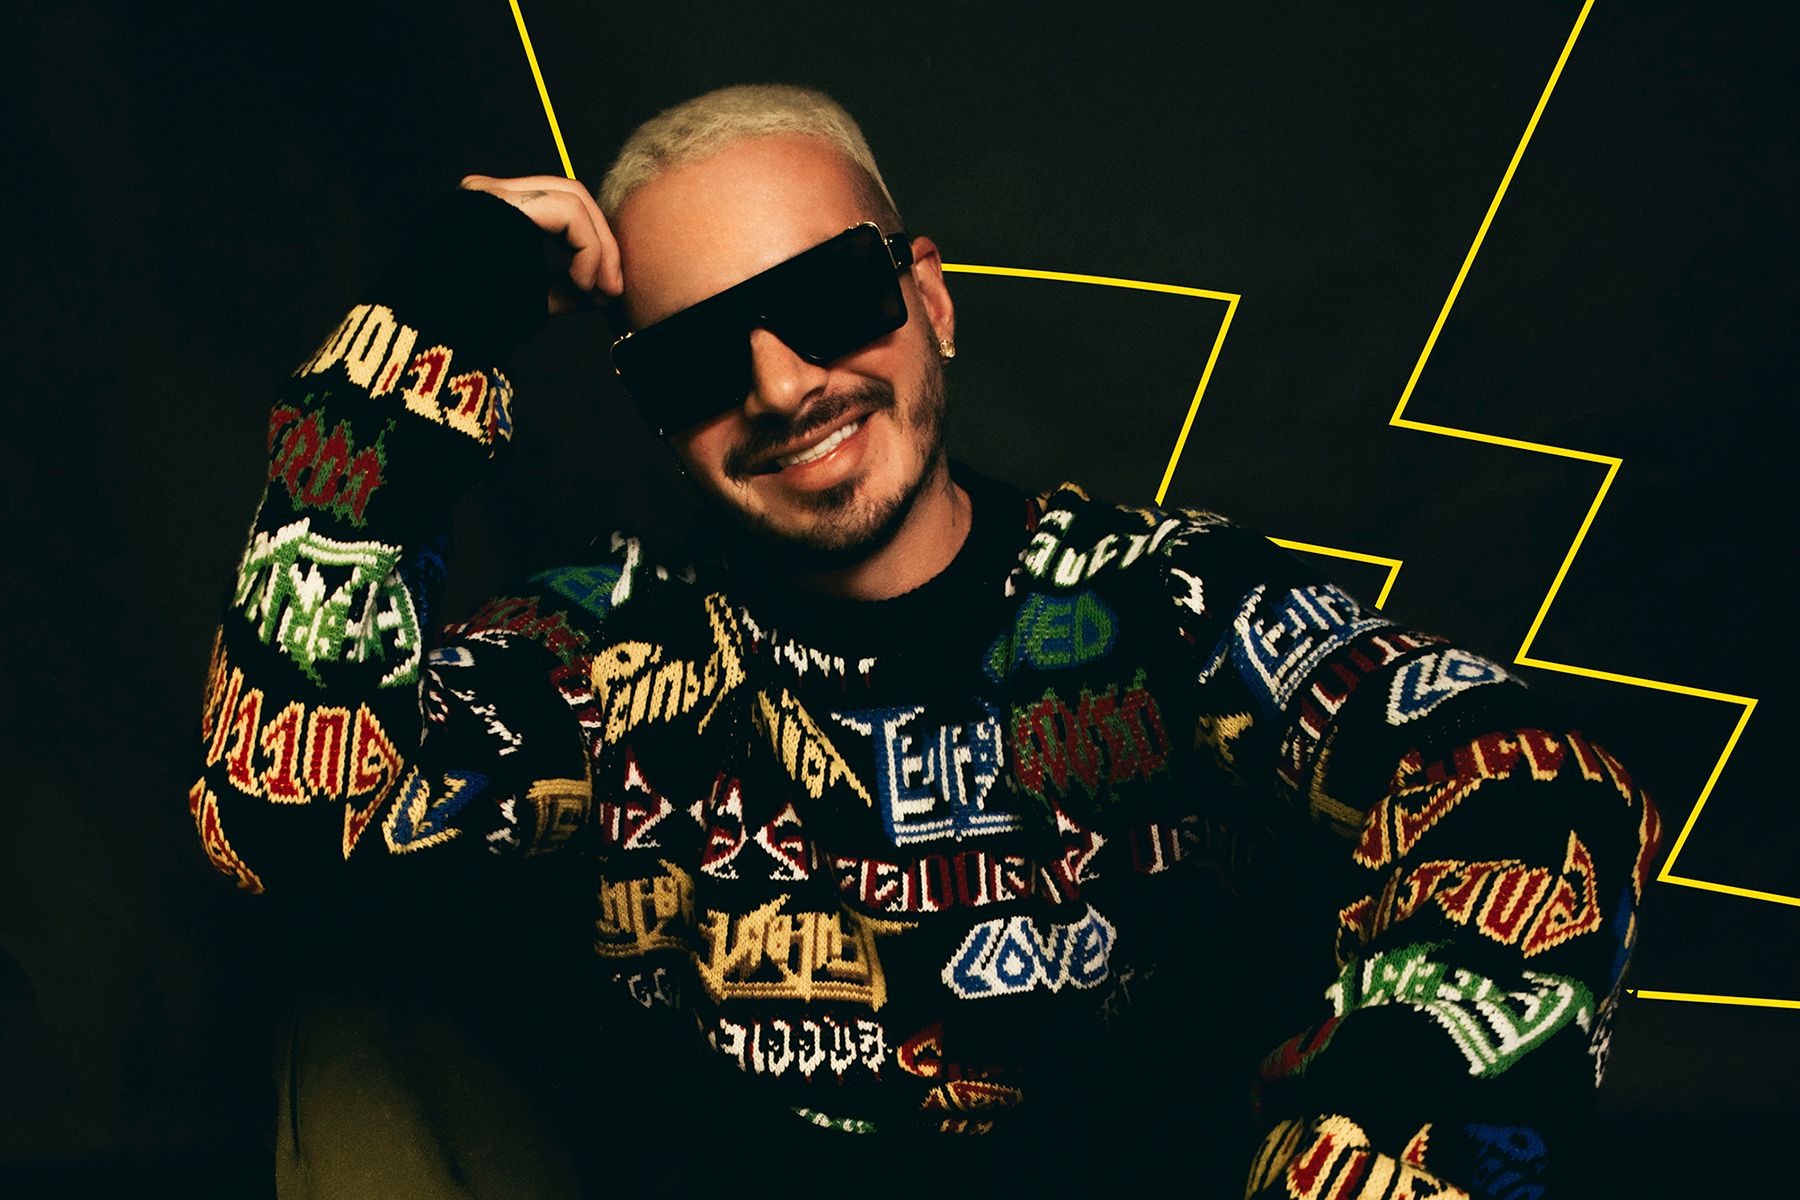 J Balvin Joins Katy Perry and Post Malone on Pokémon Compilation Album - Rolling Stone